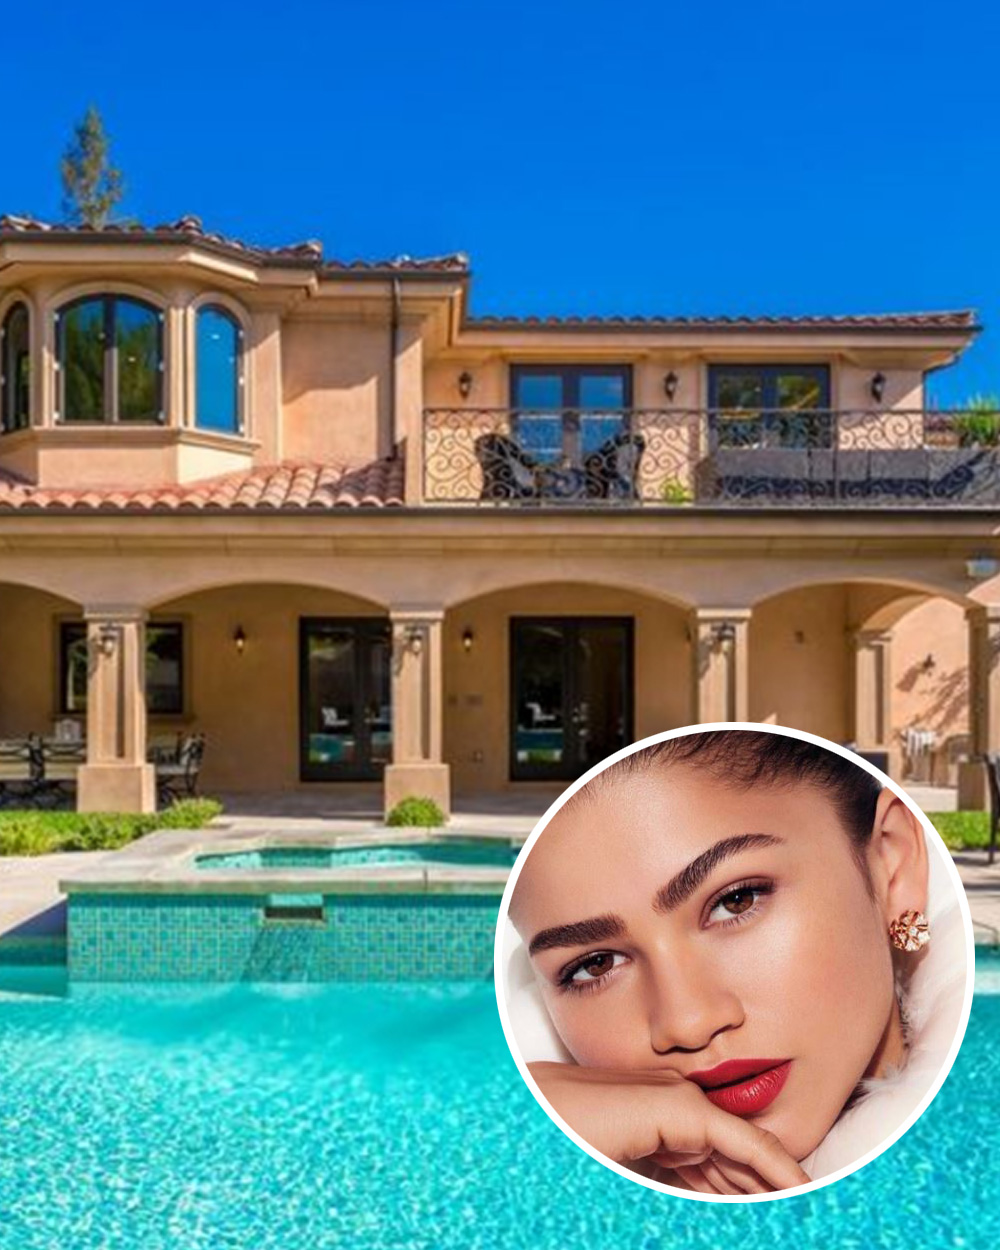 Luxury Modern Mansion In Los Angeles California: See Inside Zendaya's New Luxury $1.4 Million California